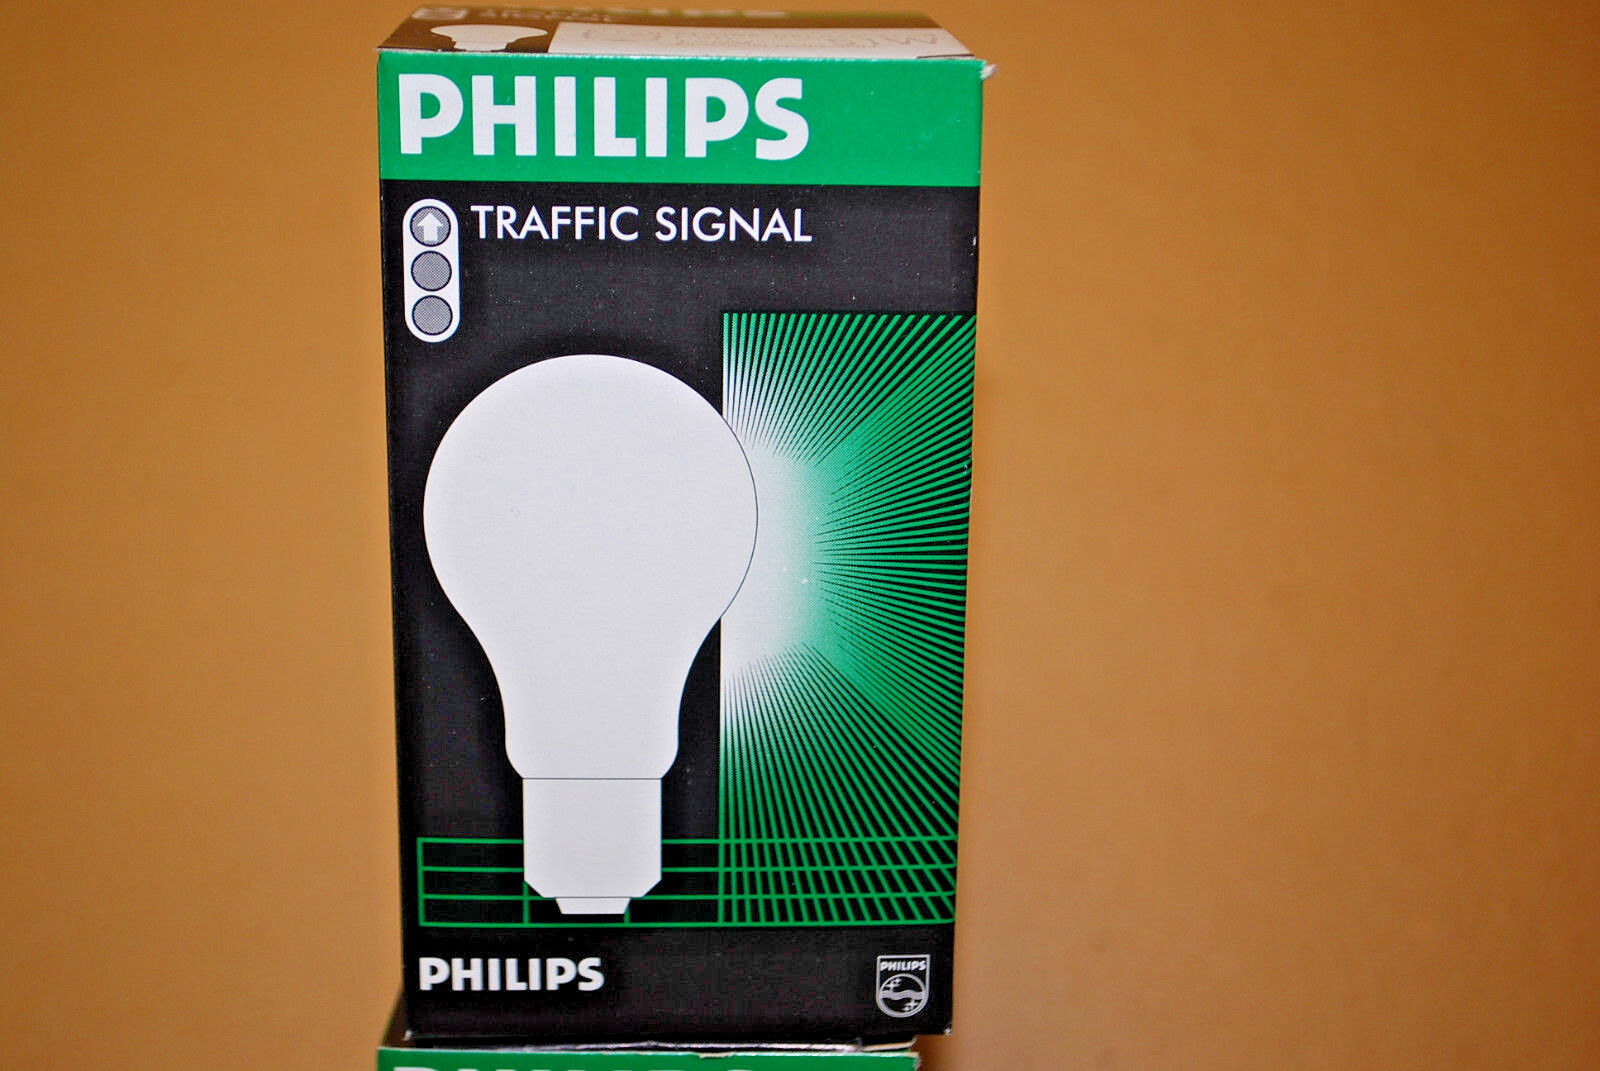 PHILIPS  51A19 RR TS Ring Reflector Traffic Signal Bulbs 51W 120V S4727